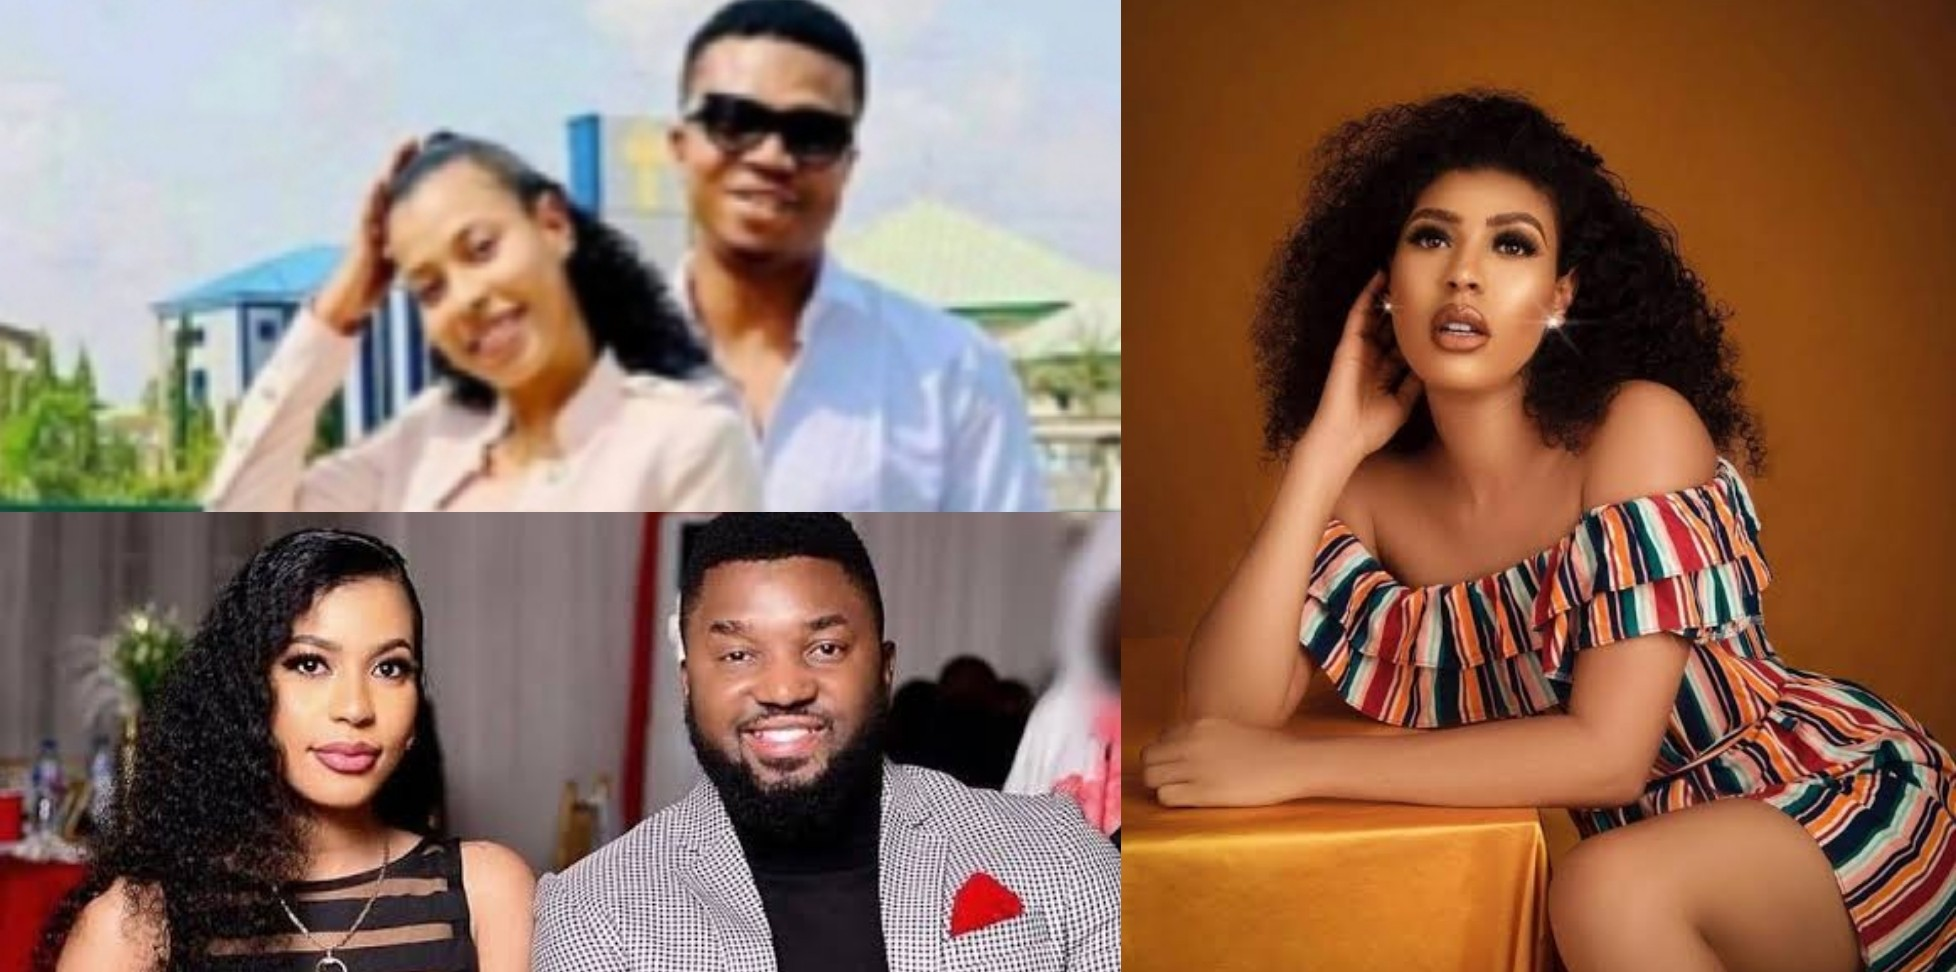 VIDEO: Nini Reacts To Multiple Pictures Of Her Boyfriend Online